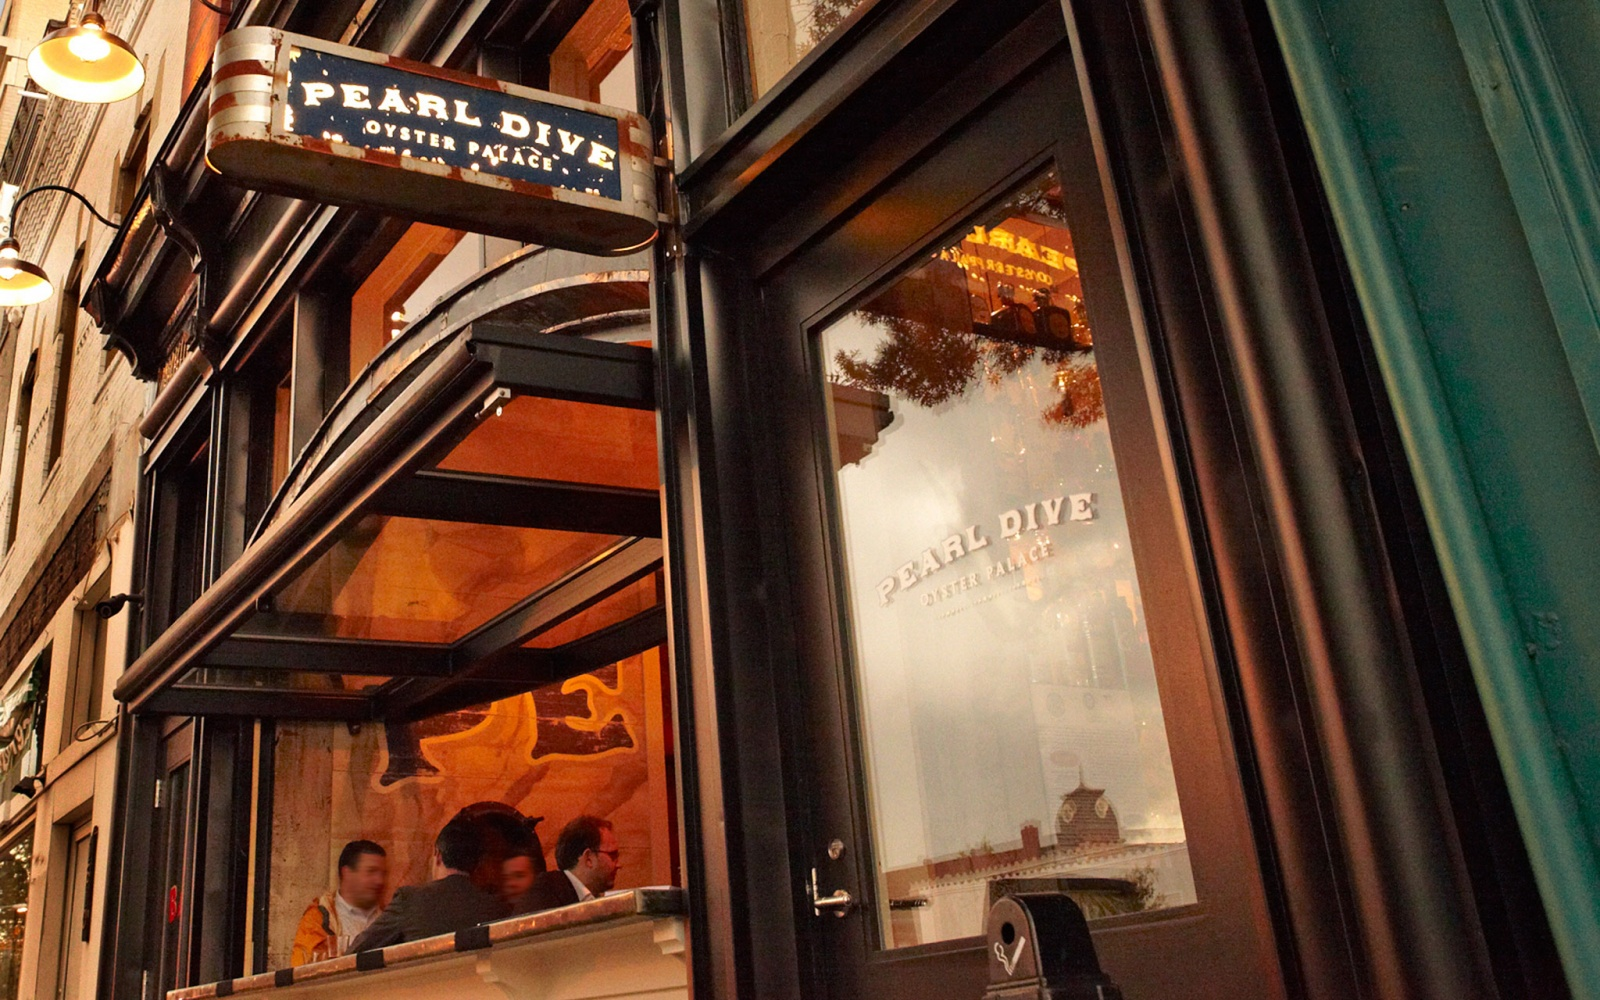 Pearl Dive Oyster Palace in Washington D.C.